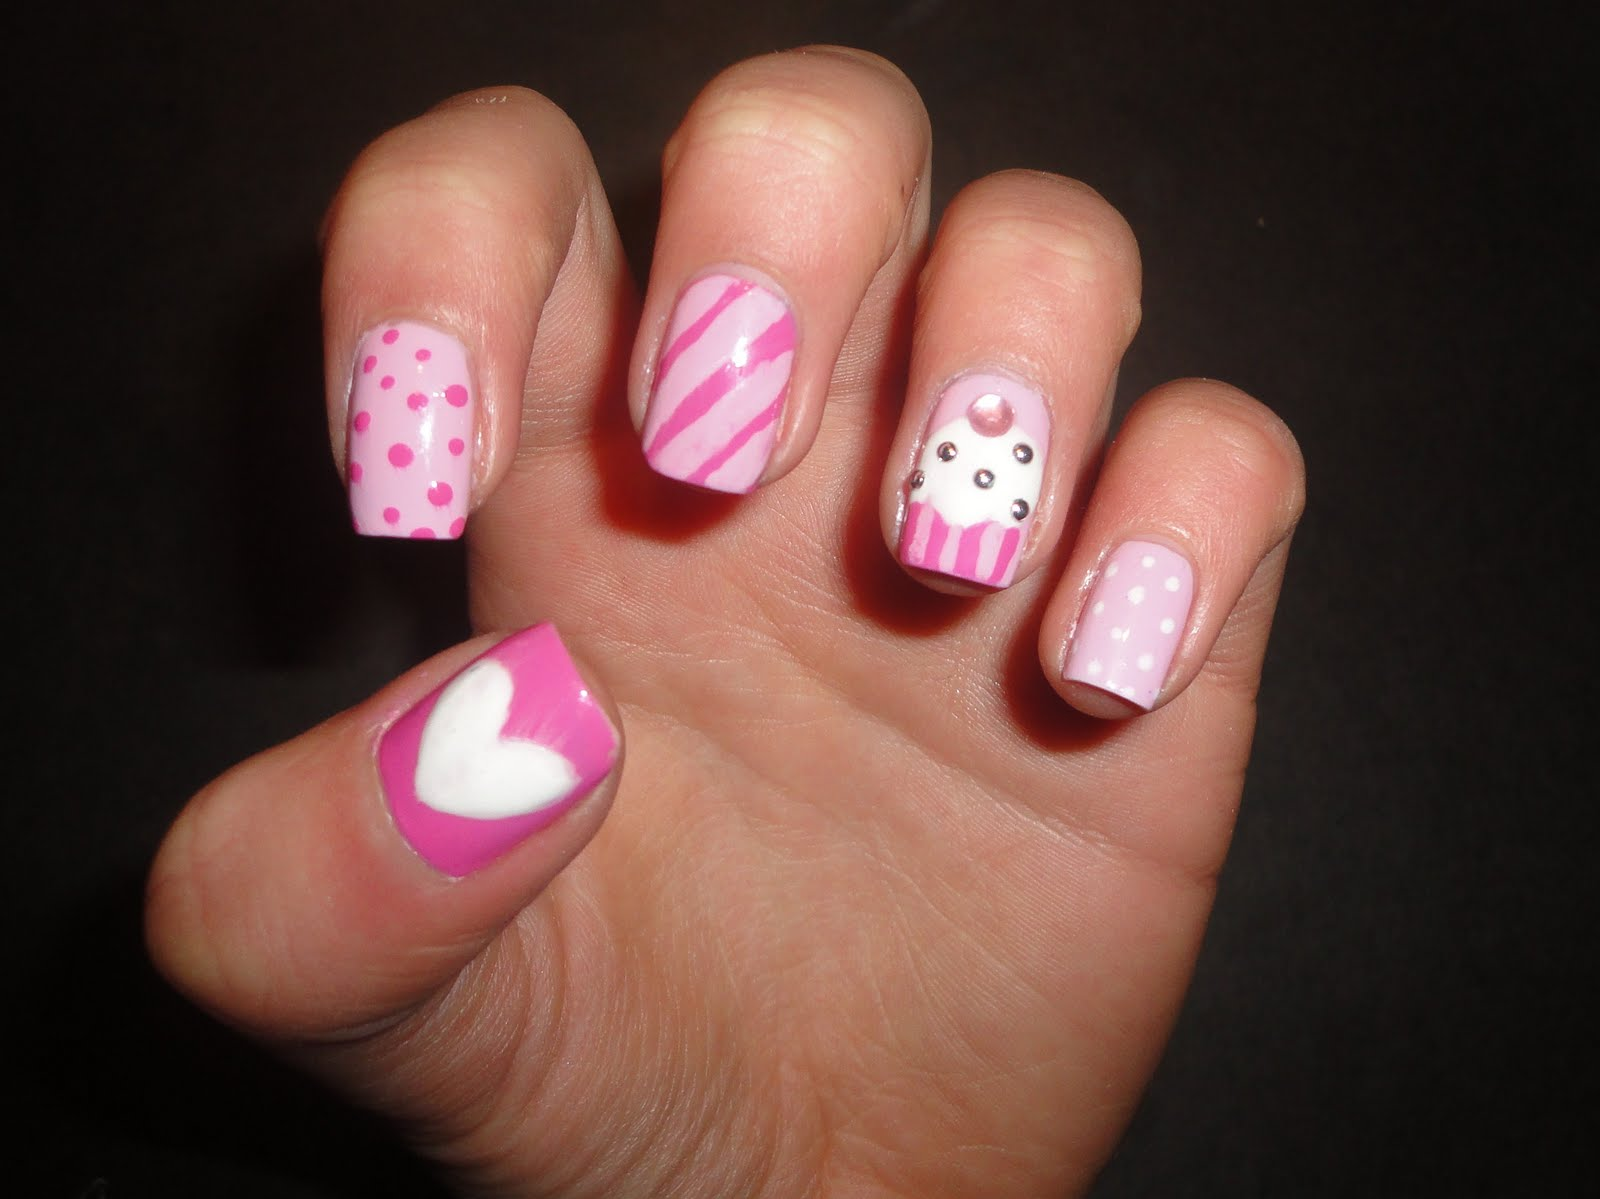 Cute Nail Art Designs Nail Designs Hair Styles Tattoos And